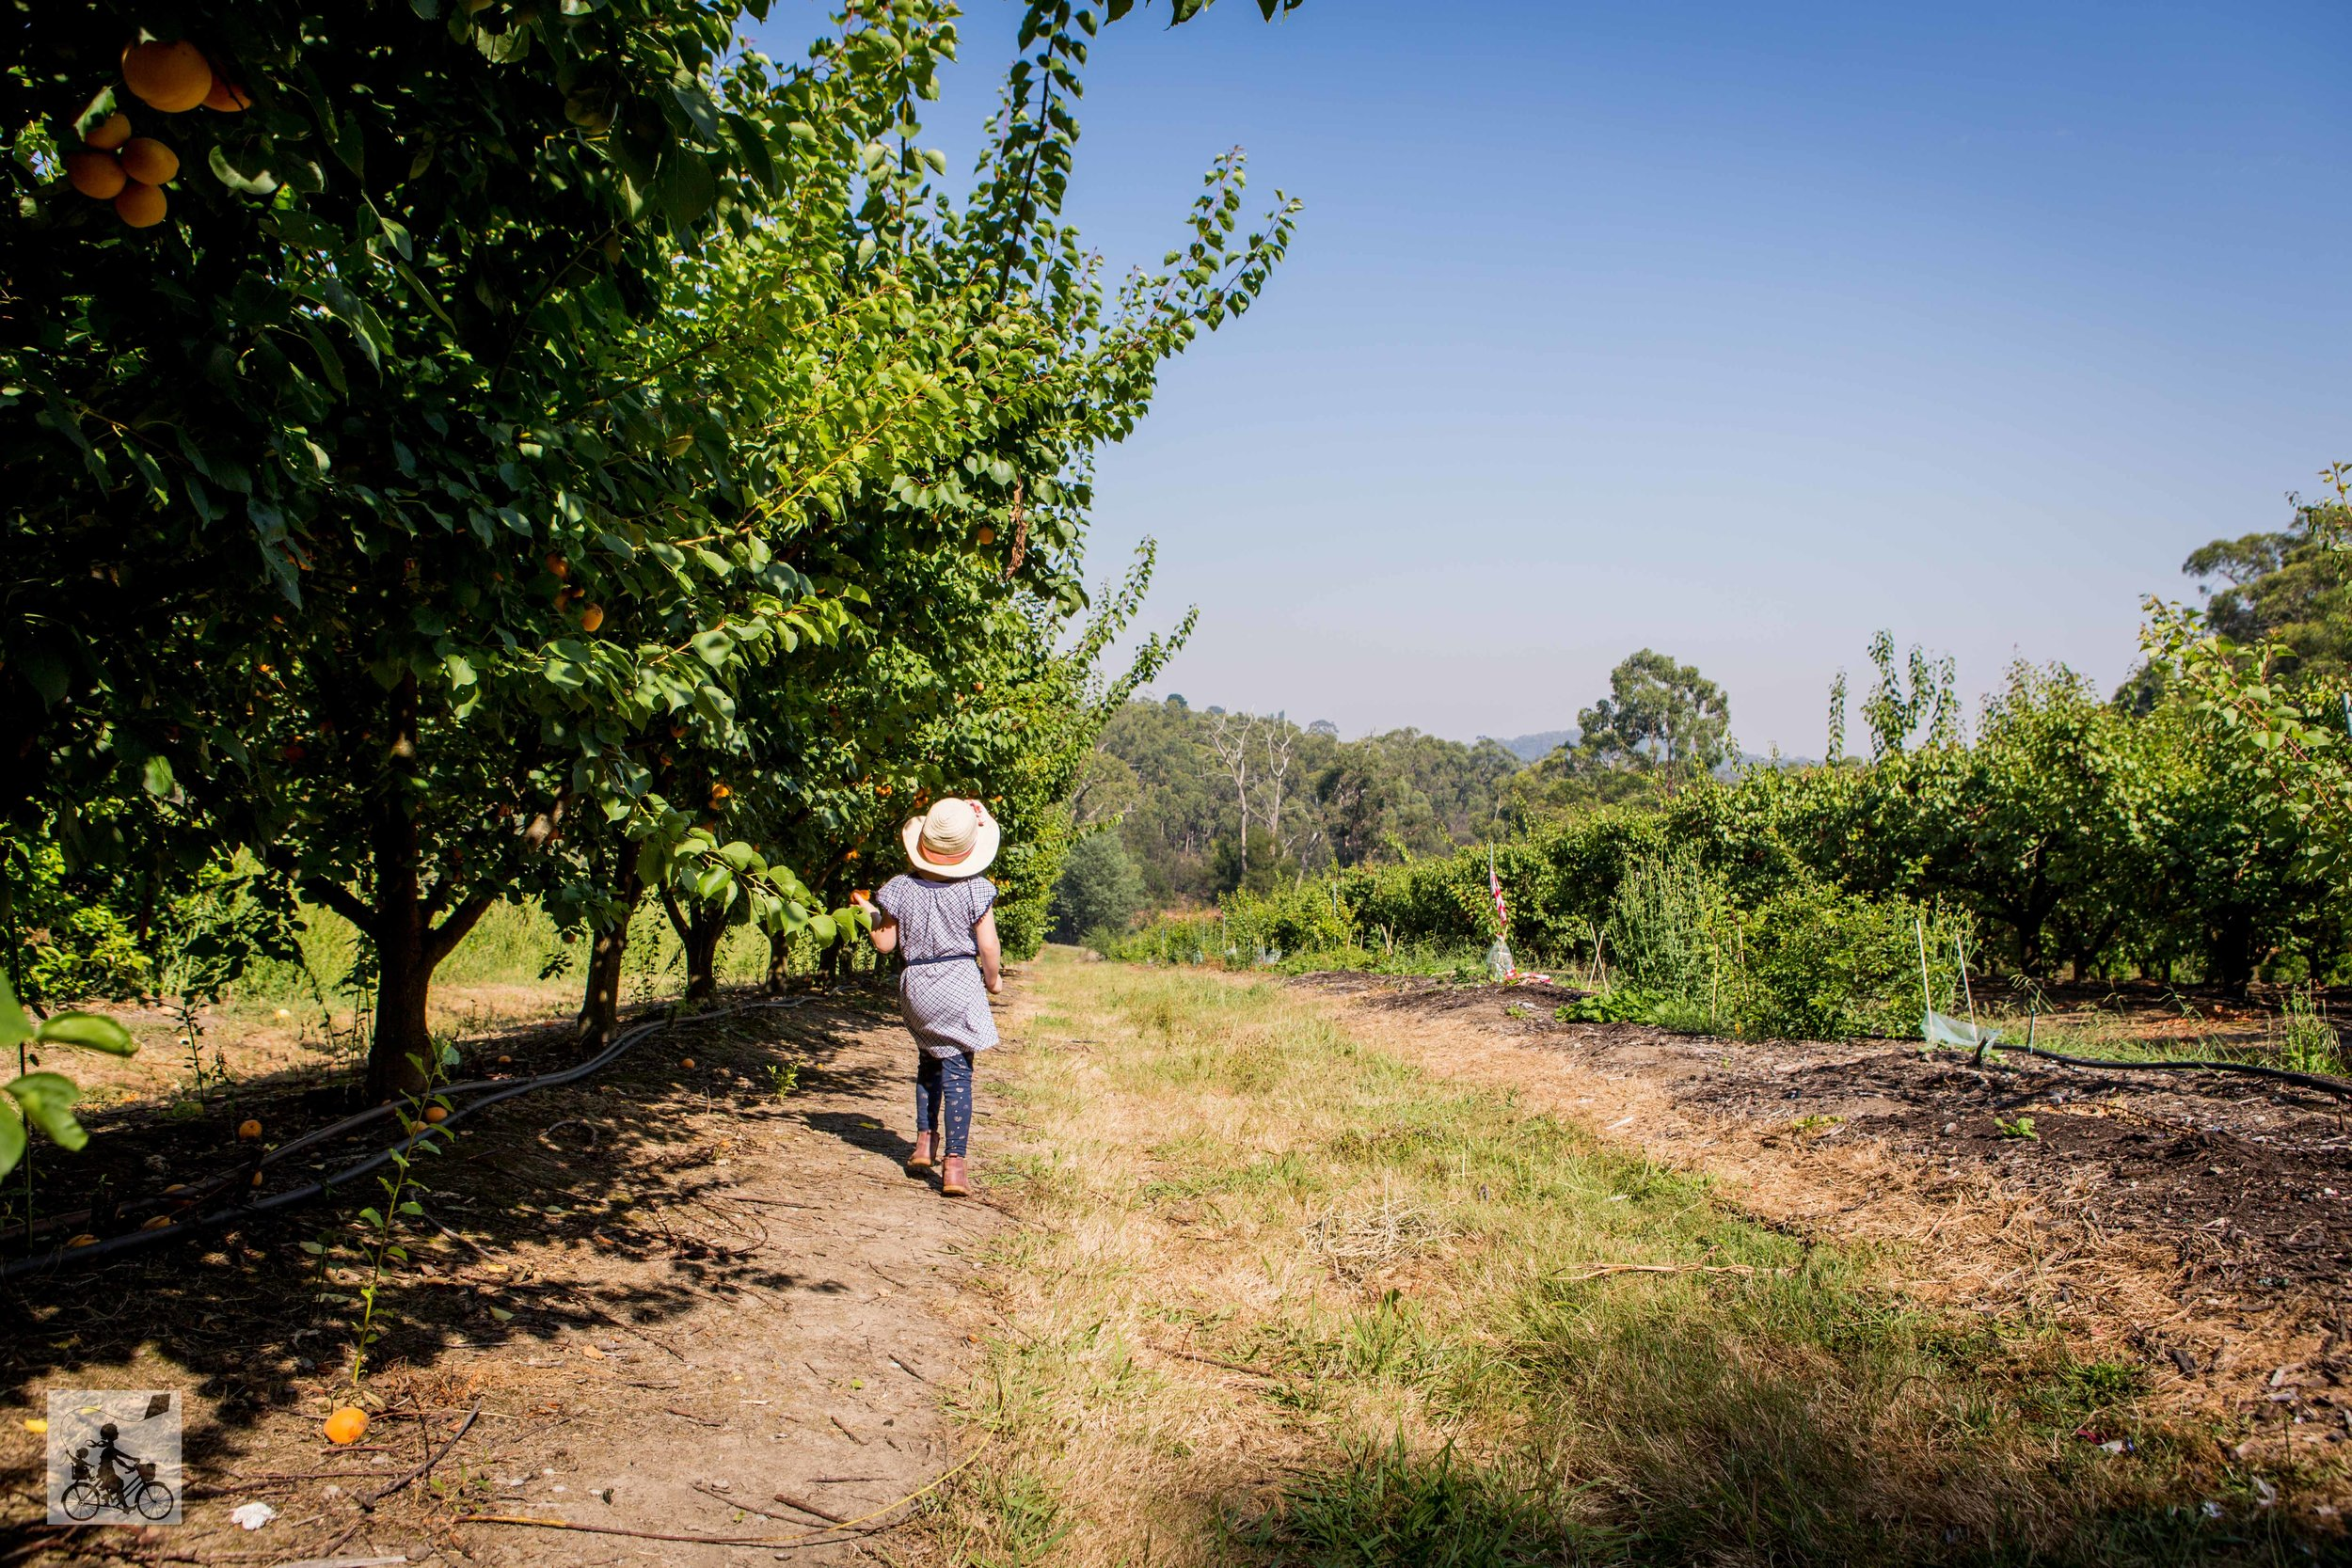 Rayners Orchard - Mamma Knows East (31 of 44).jpg